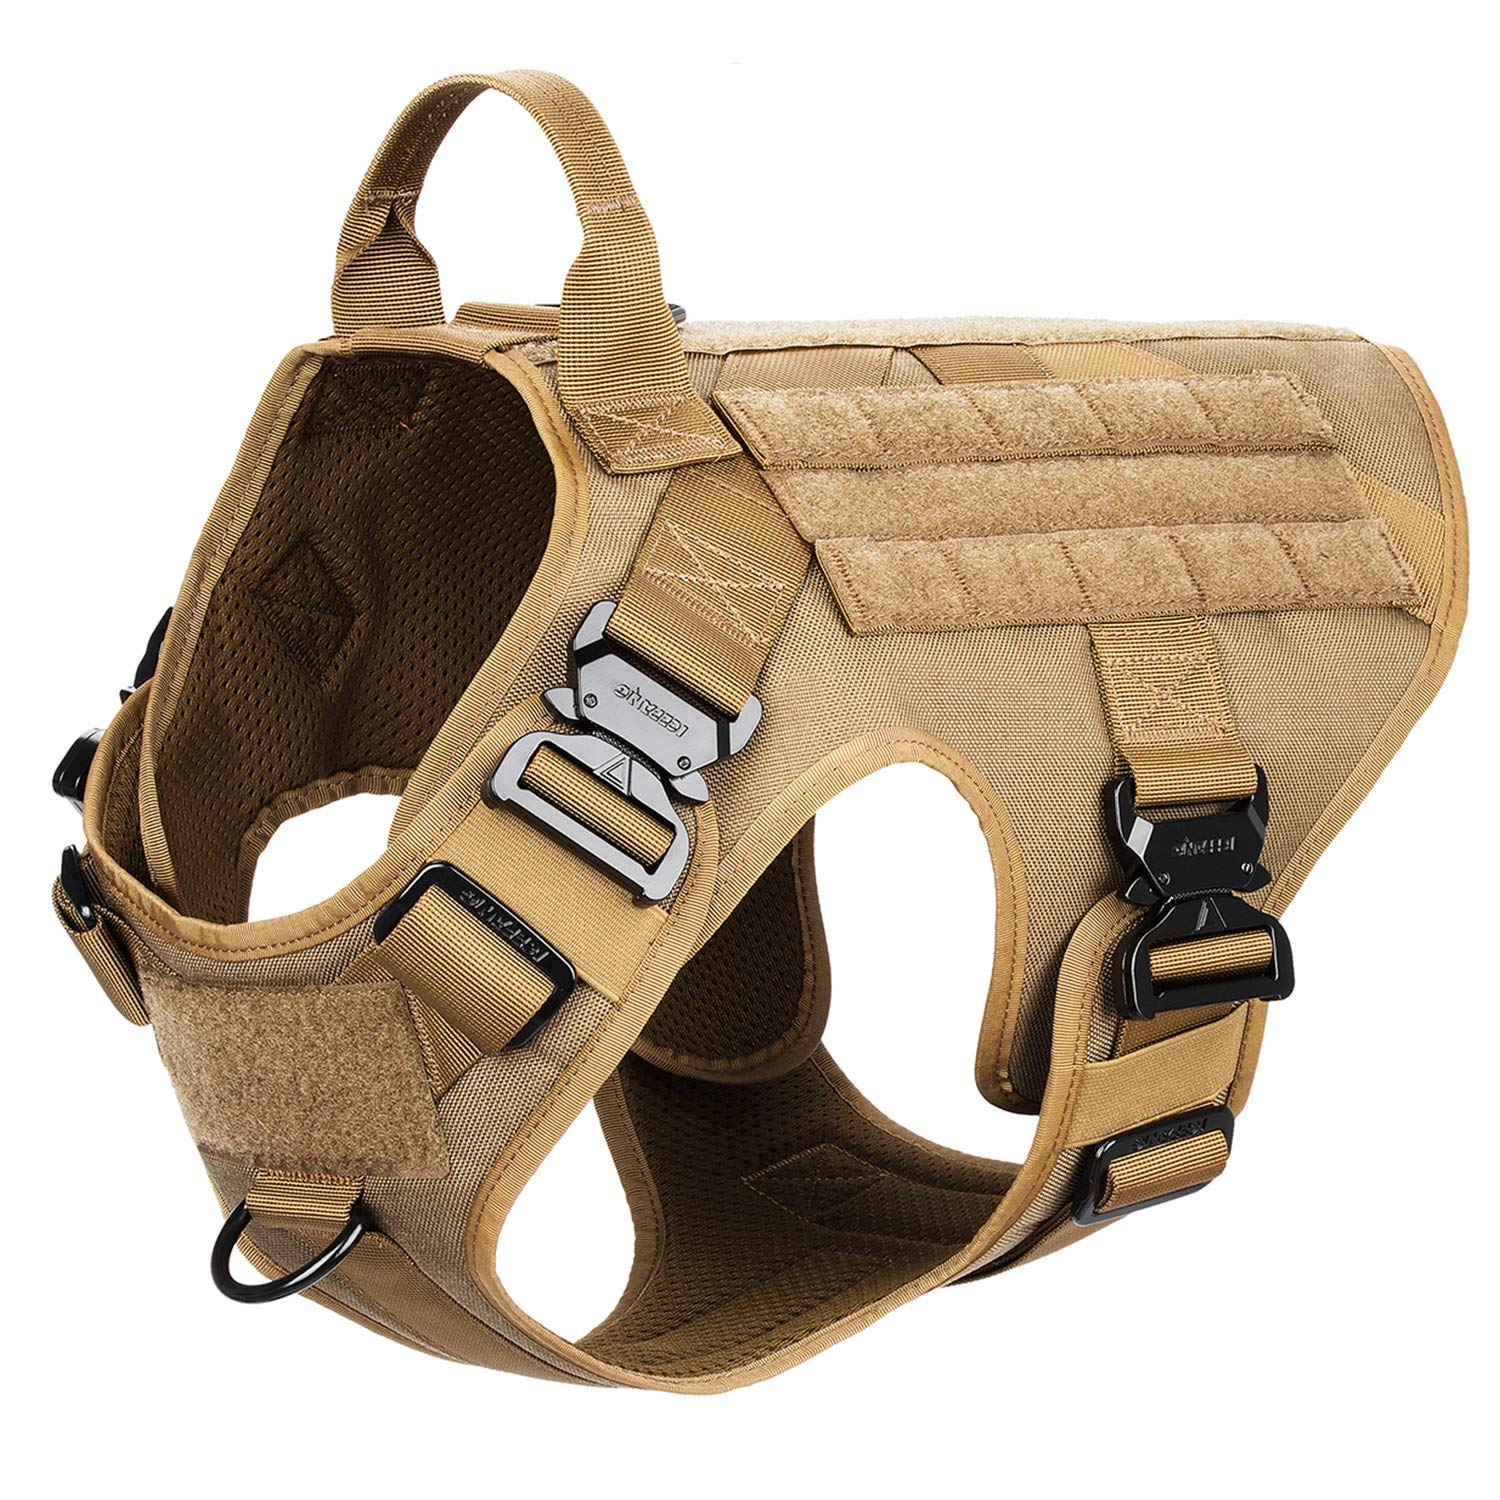 ICEFANG Tactical Dog Harness,K9 Working Dog Vest,No Pulling Front Clip Leash Attachment (L (28''-35'' Girth), Coyote Brown-4x Metal Buckle)